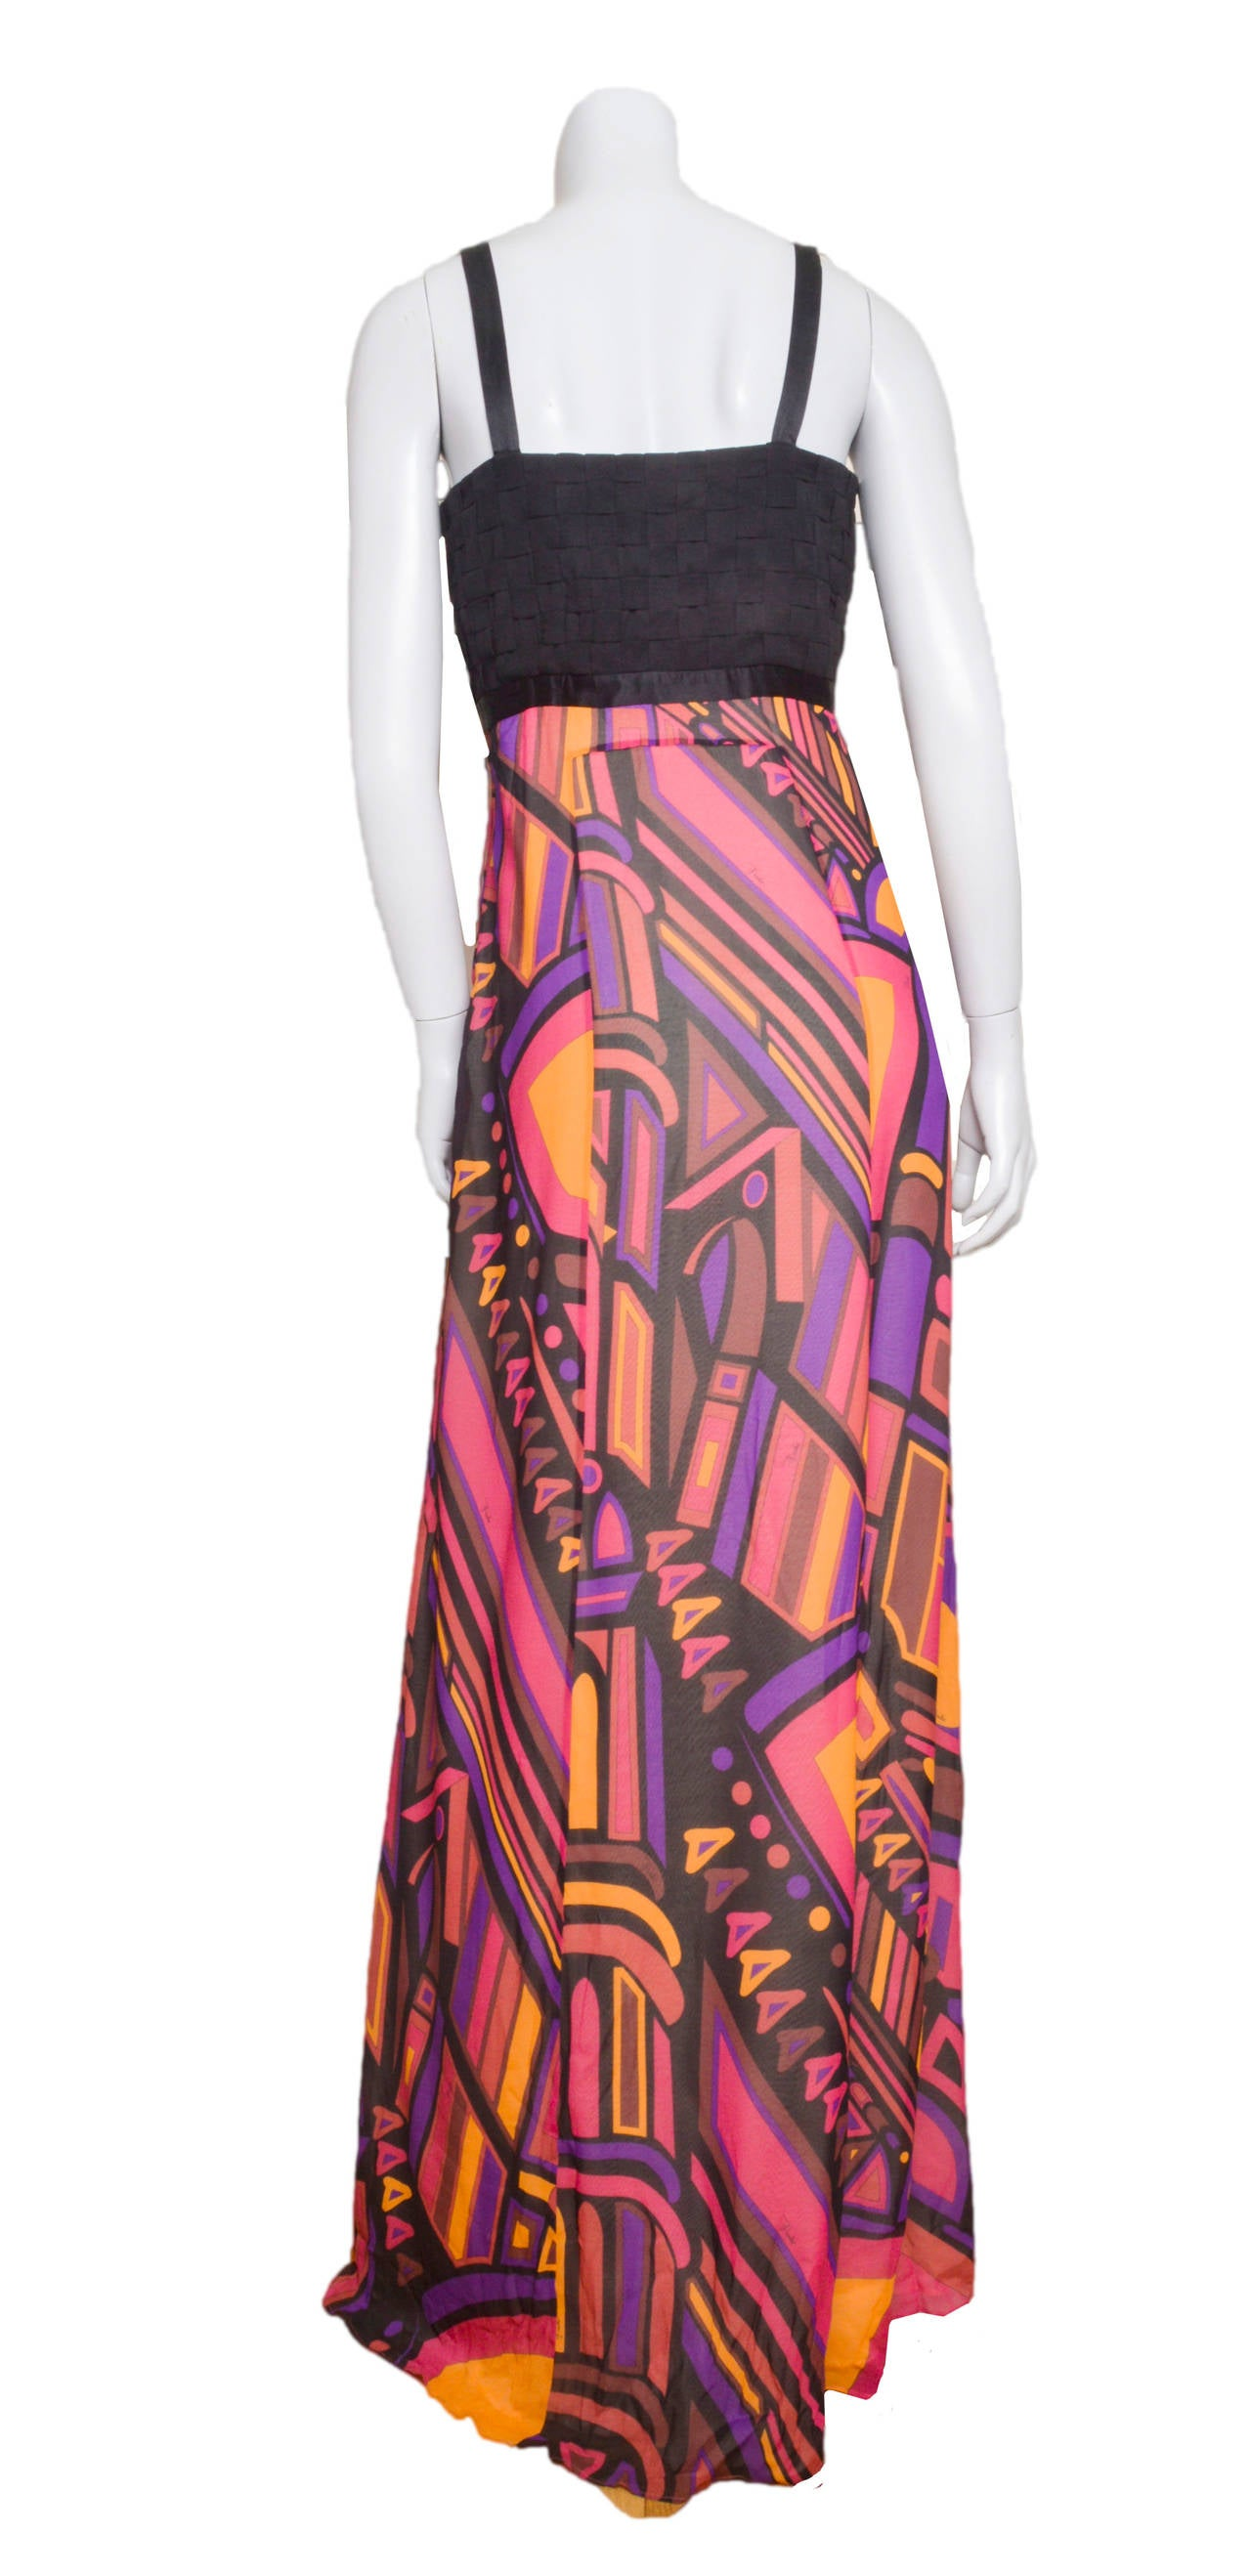 Stunning empire waist silk crepe Emilio Pucci dress. Plunging neckline with empire waist and basket weave bodice. Jewel tone abstract print a-line skirt. Skirt is lined. Side zip with hook an eye closure. Tagged a size 40.